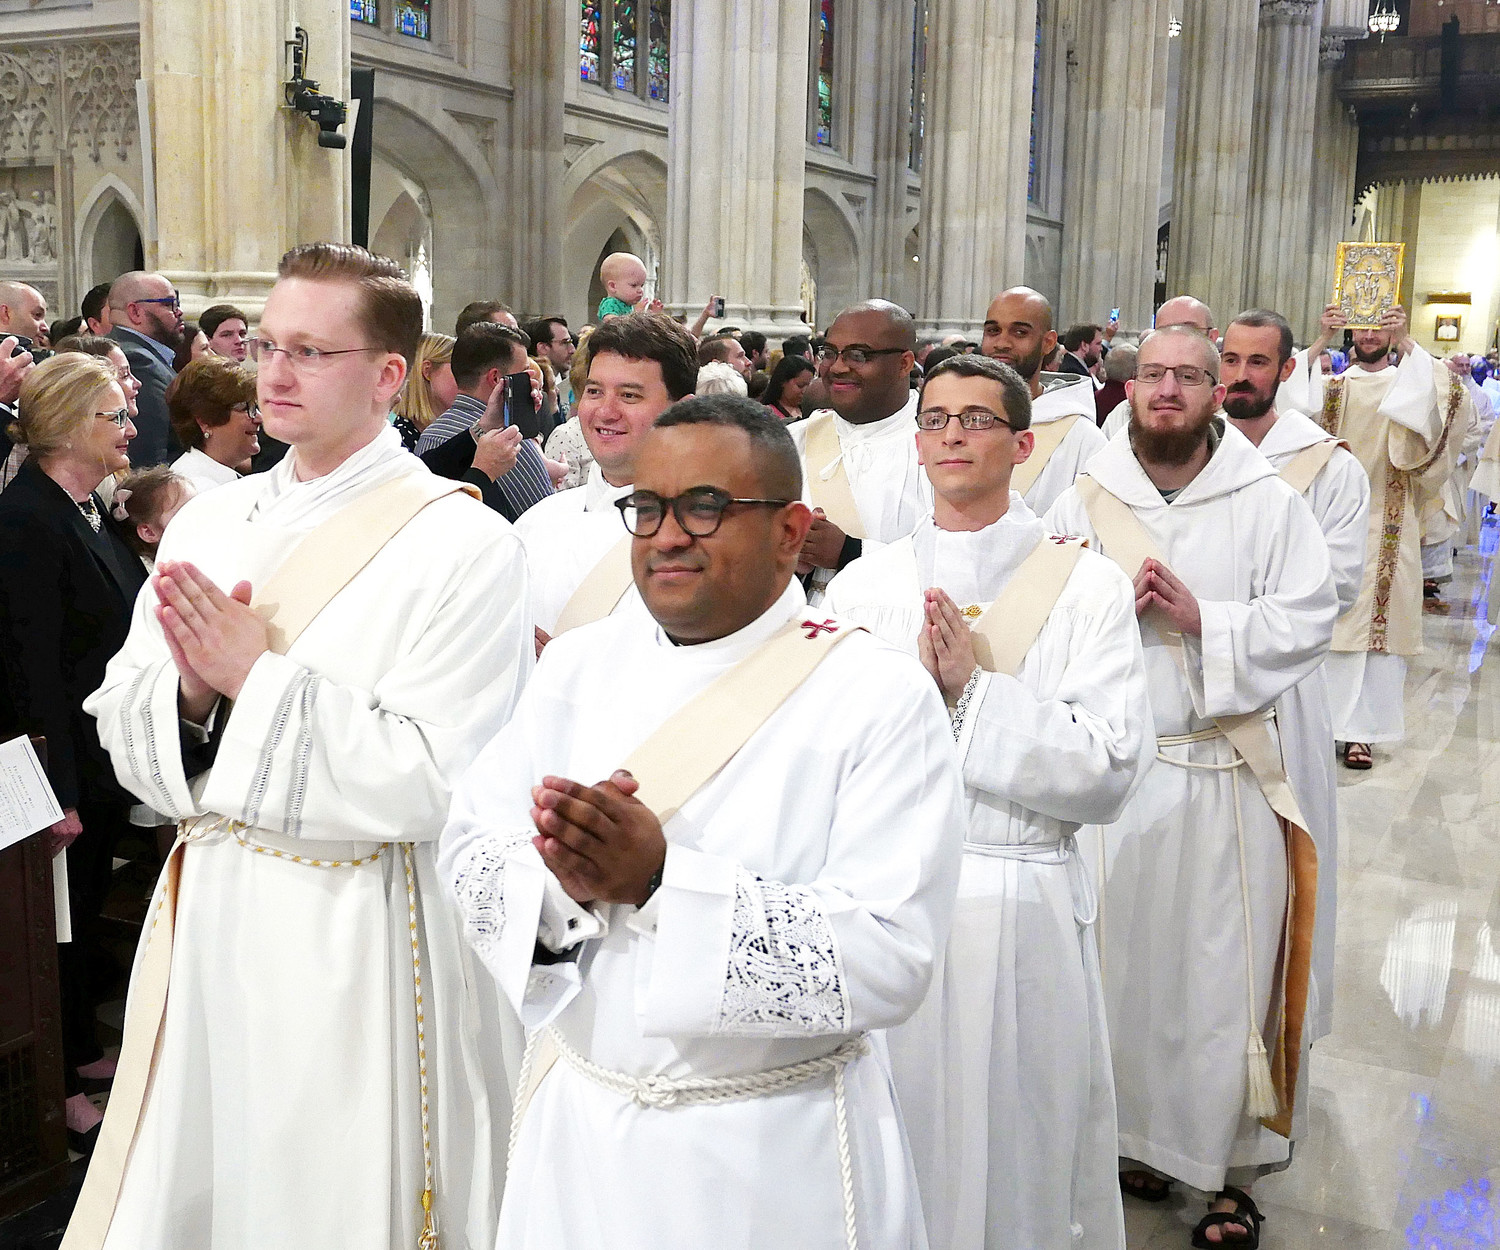 As the Mass of Ordination begins, the nine men who were ordained to the priesthood by Cardinal Dolan on May 26 process up the center aisle of St. Patrick's Cathedral. Leading the way were Father Michael Connolly and Father Osvaldo Hernandez.